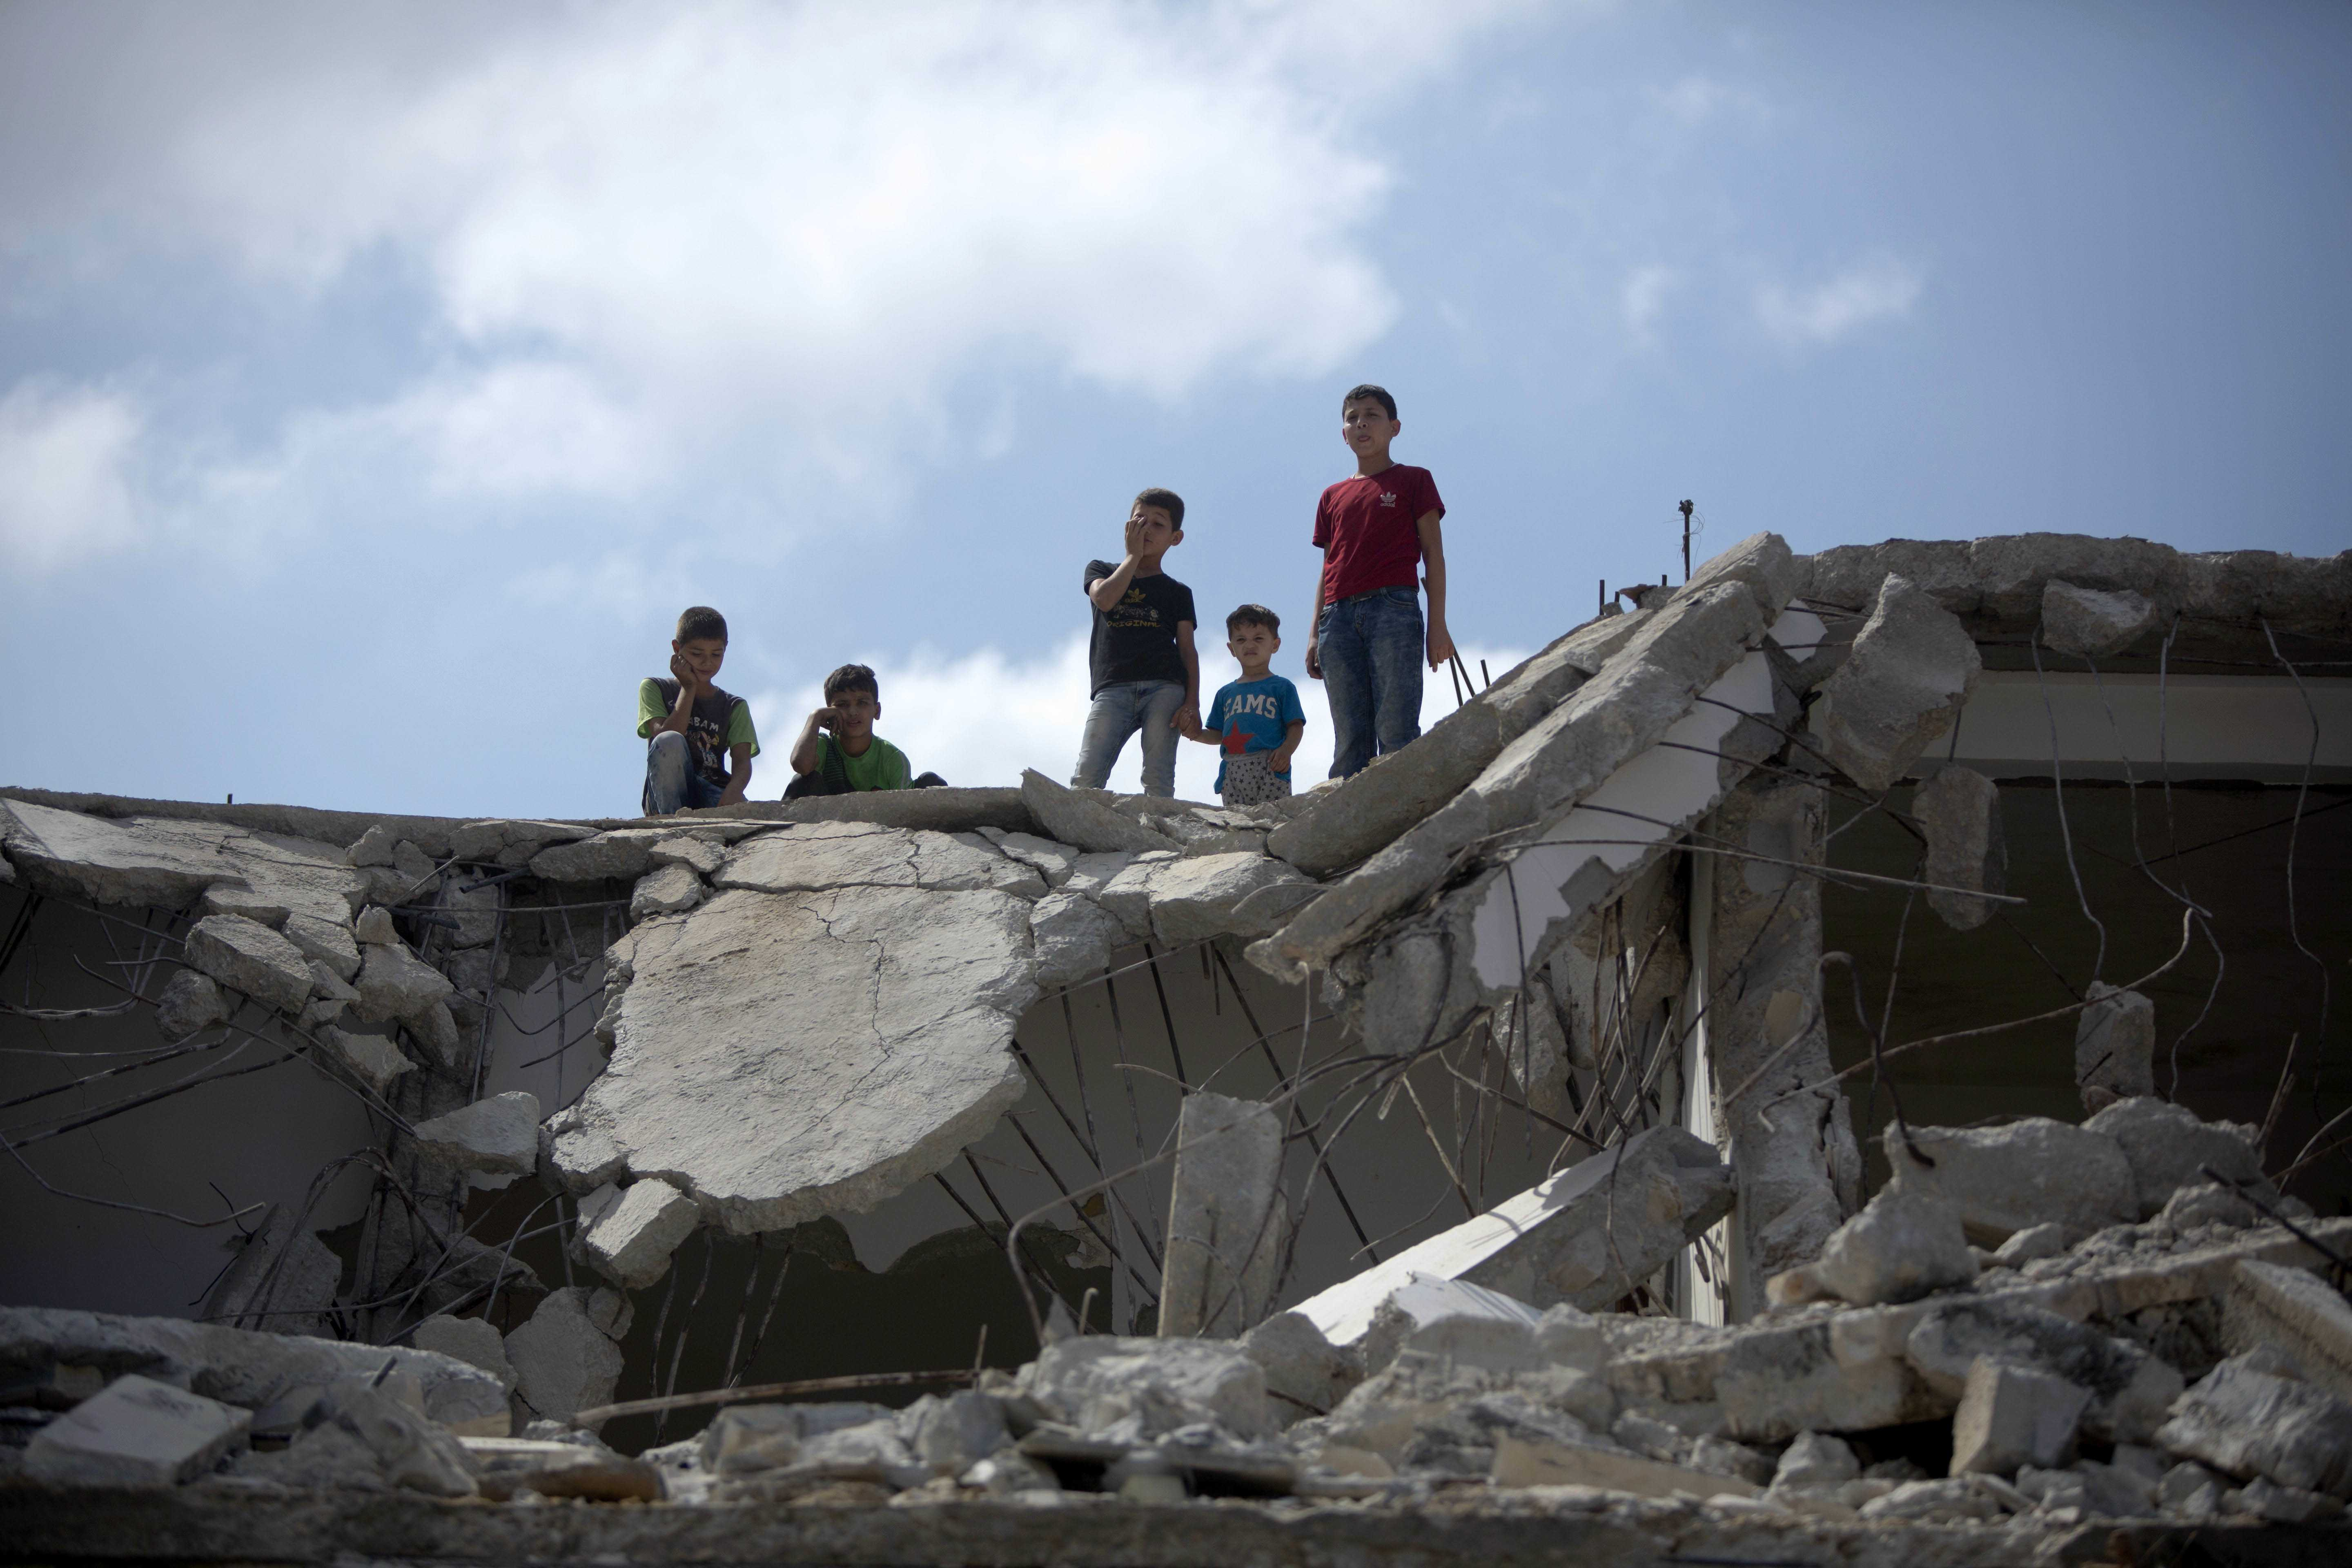 Palestinians boy stand amidst the rubble the house of Bilal Abu Zeid that was demolished by the Israeli army in the West Bank village of Kabatiya, near Jenin, Monday, July 18, 2016. Abu Zeid is said by the army to have been involved in an attack in Jerusalem in February that killed an Israeli paramilitary police officer. The military did not disclose what role Abu Zeid allegedly played in the attack.(AP Photo/Majdi Mohammed)